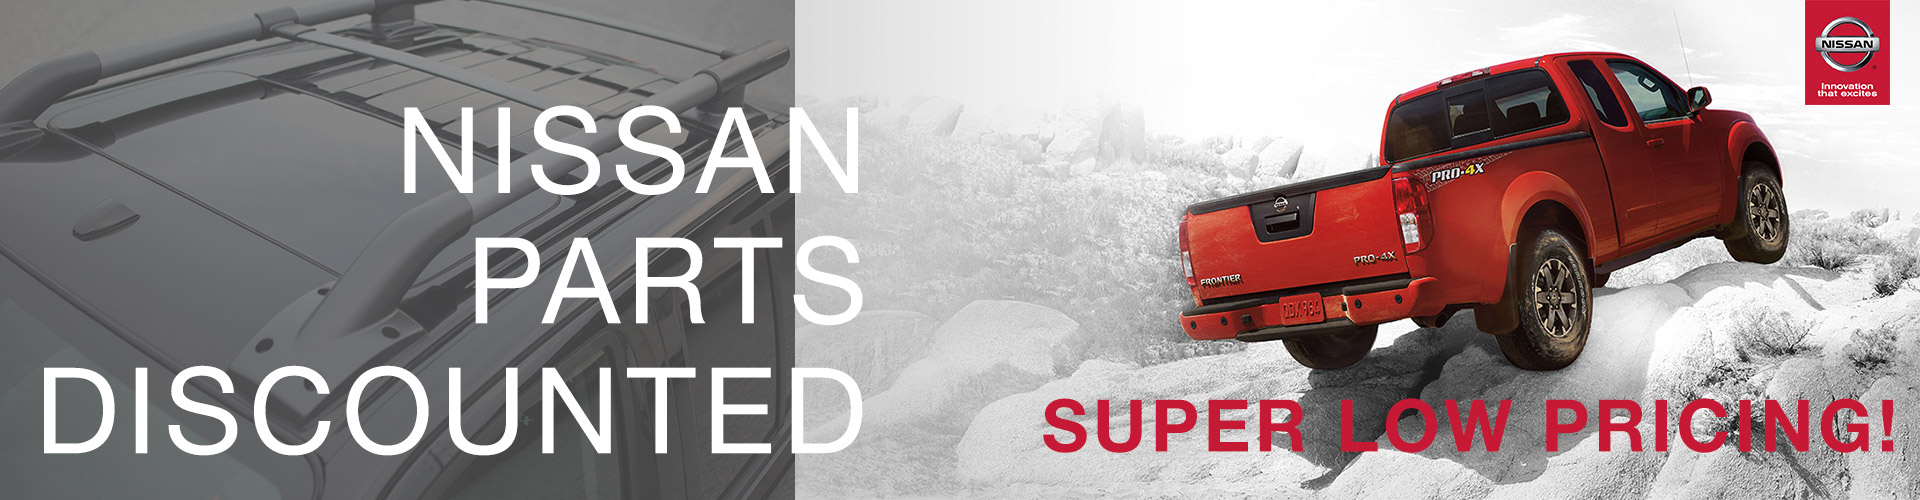 Nissan Parts Discounted - Super Low Pricing!